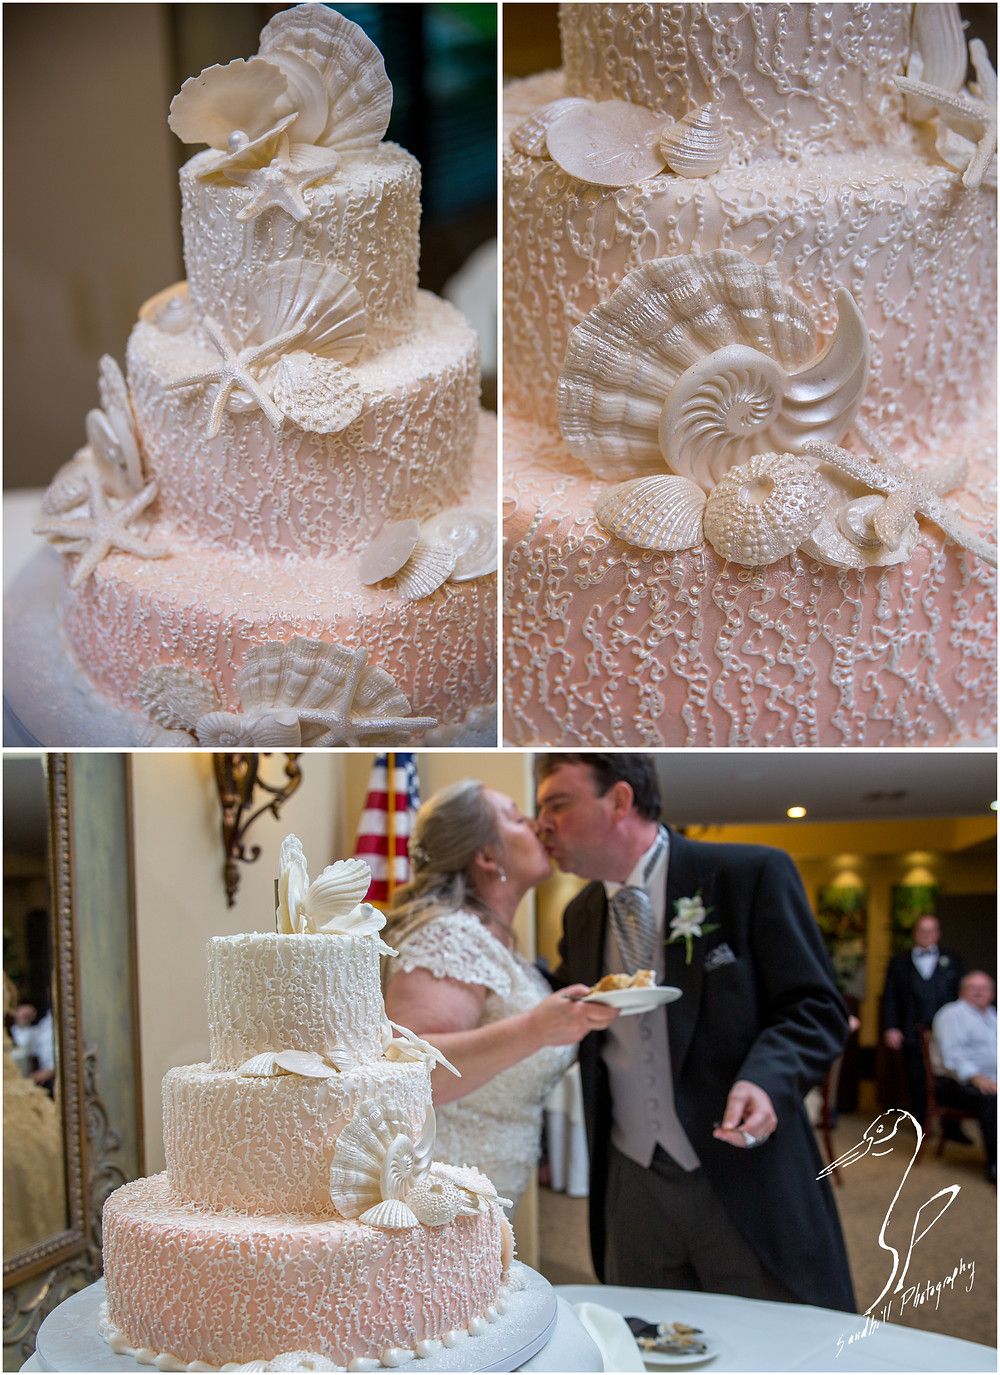 Rainy Day Wedding Photography Sarasota, Beach themed wedding cake and cake cutting with a kiss